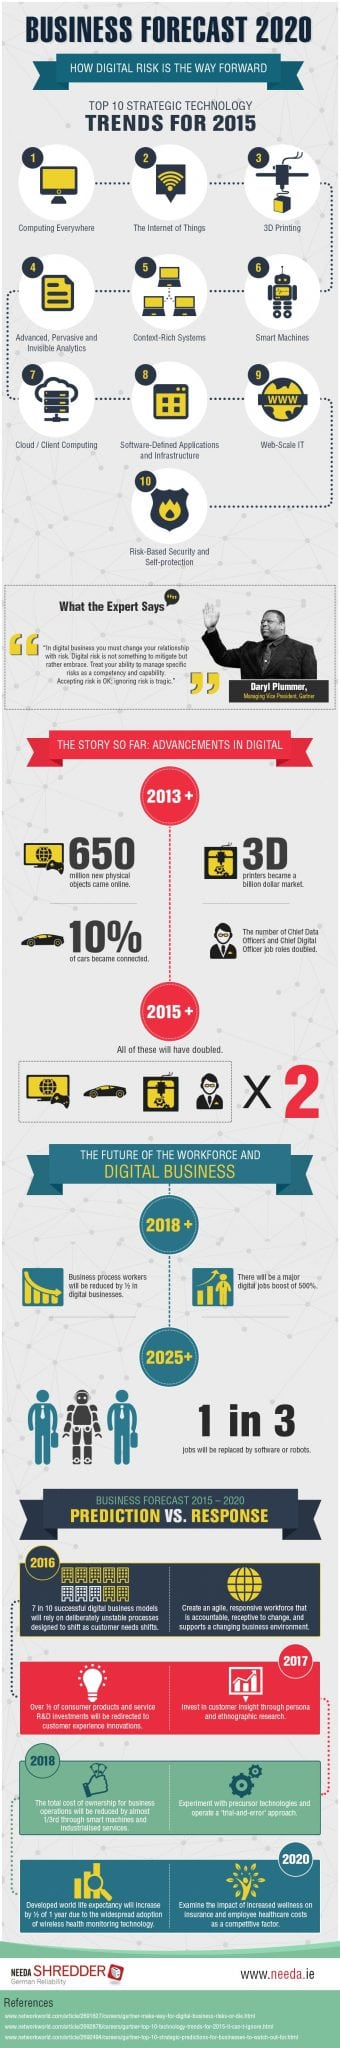 Photo of Business Forecast 2020, How Digital Risk is the way Forward [INFOGRAPHIC]